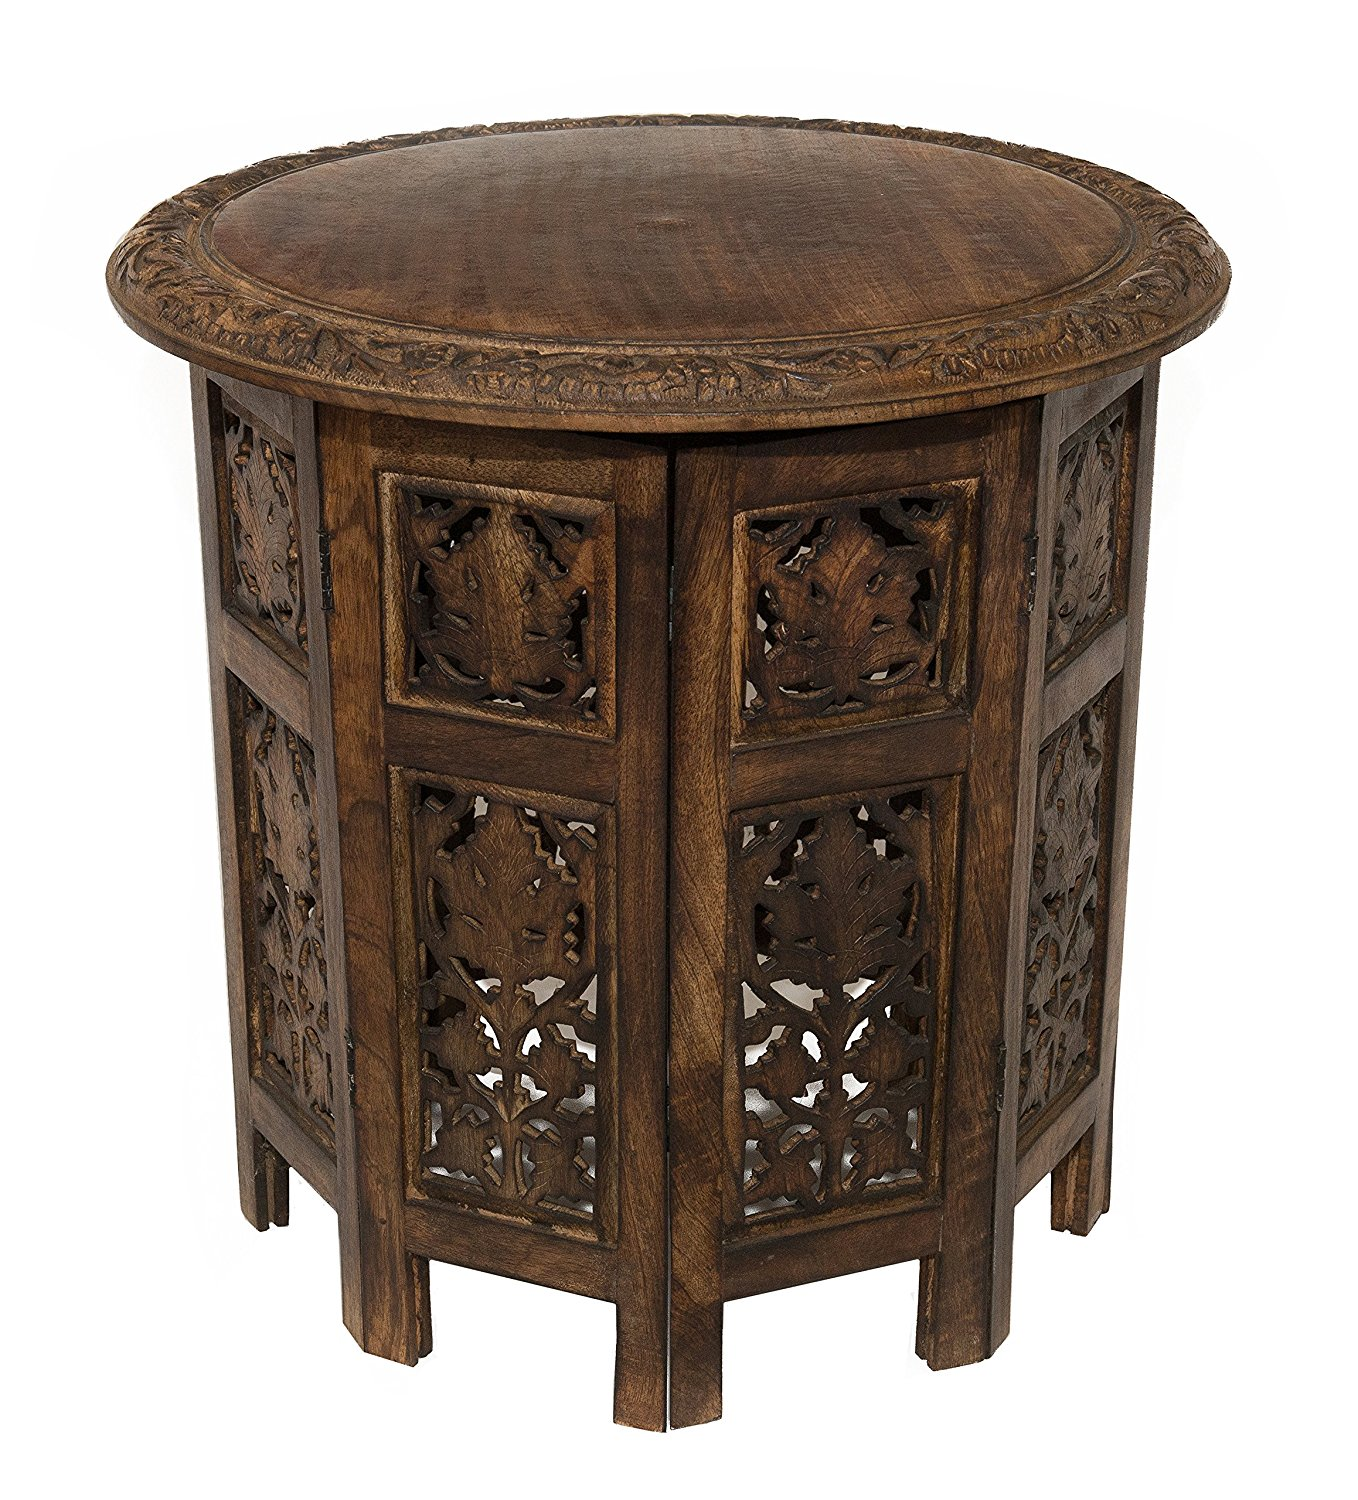 lovely small accent table for ornate low round wooden fancy lamps dining room chairs vintage asian restoration hardware sectional west elm set easy diy coffee black glass wood